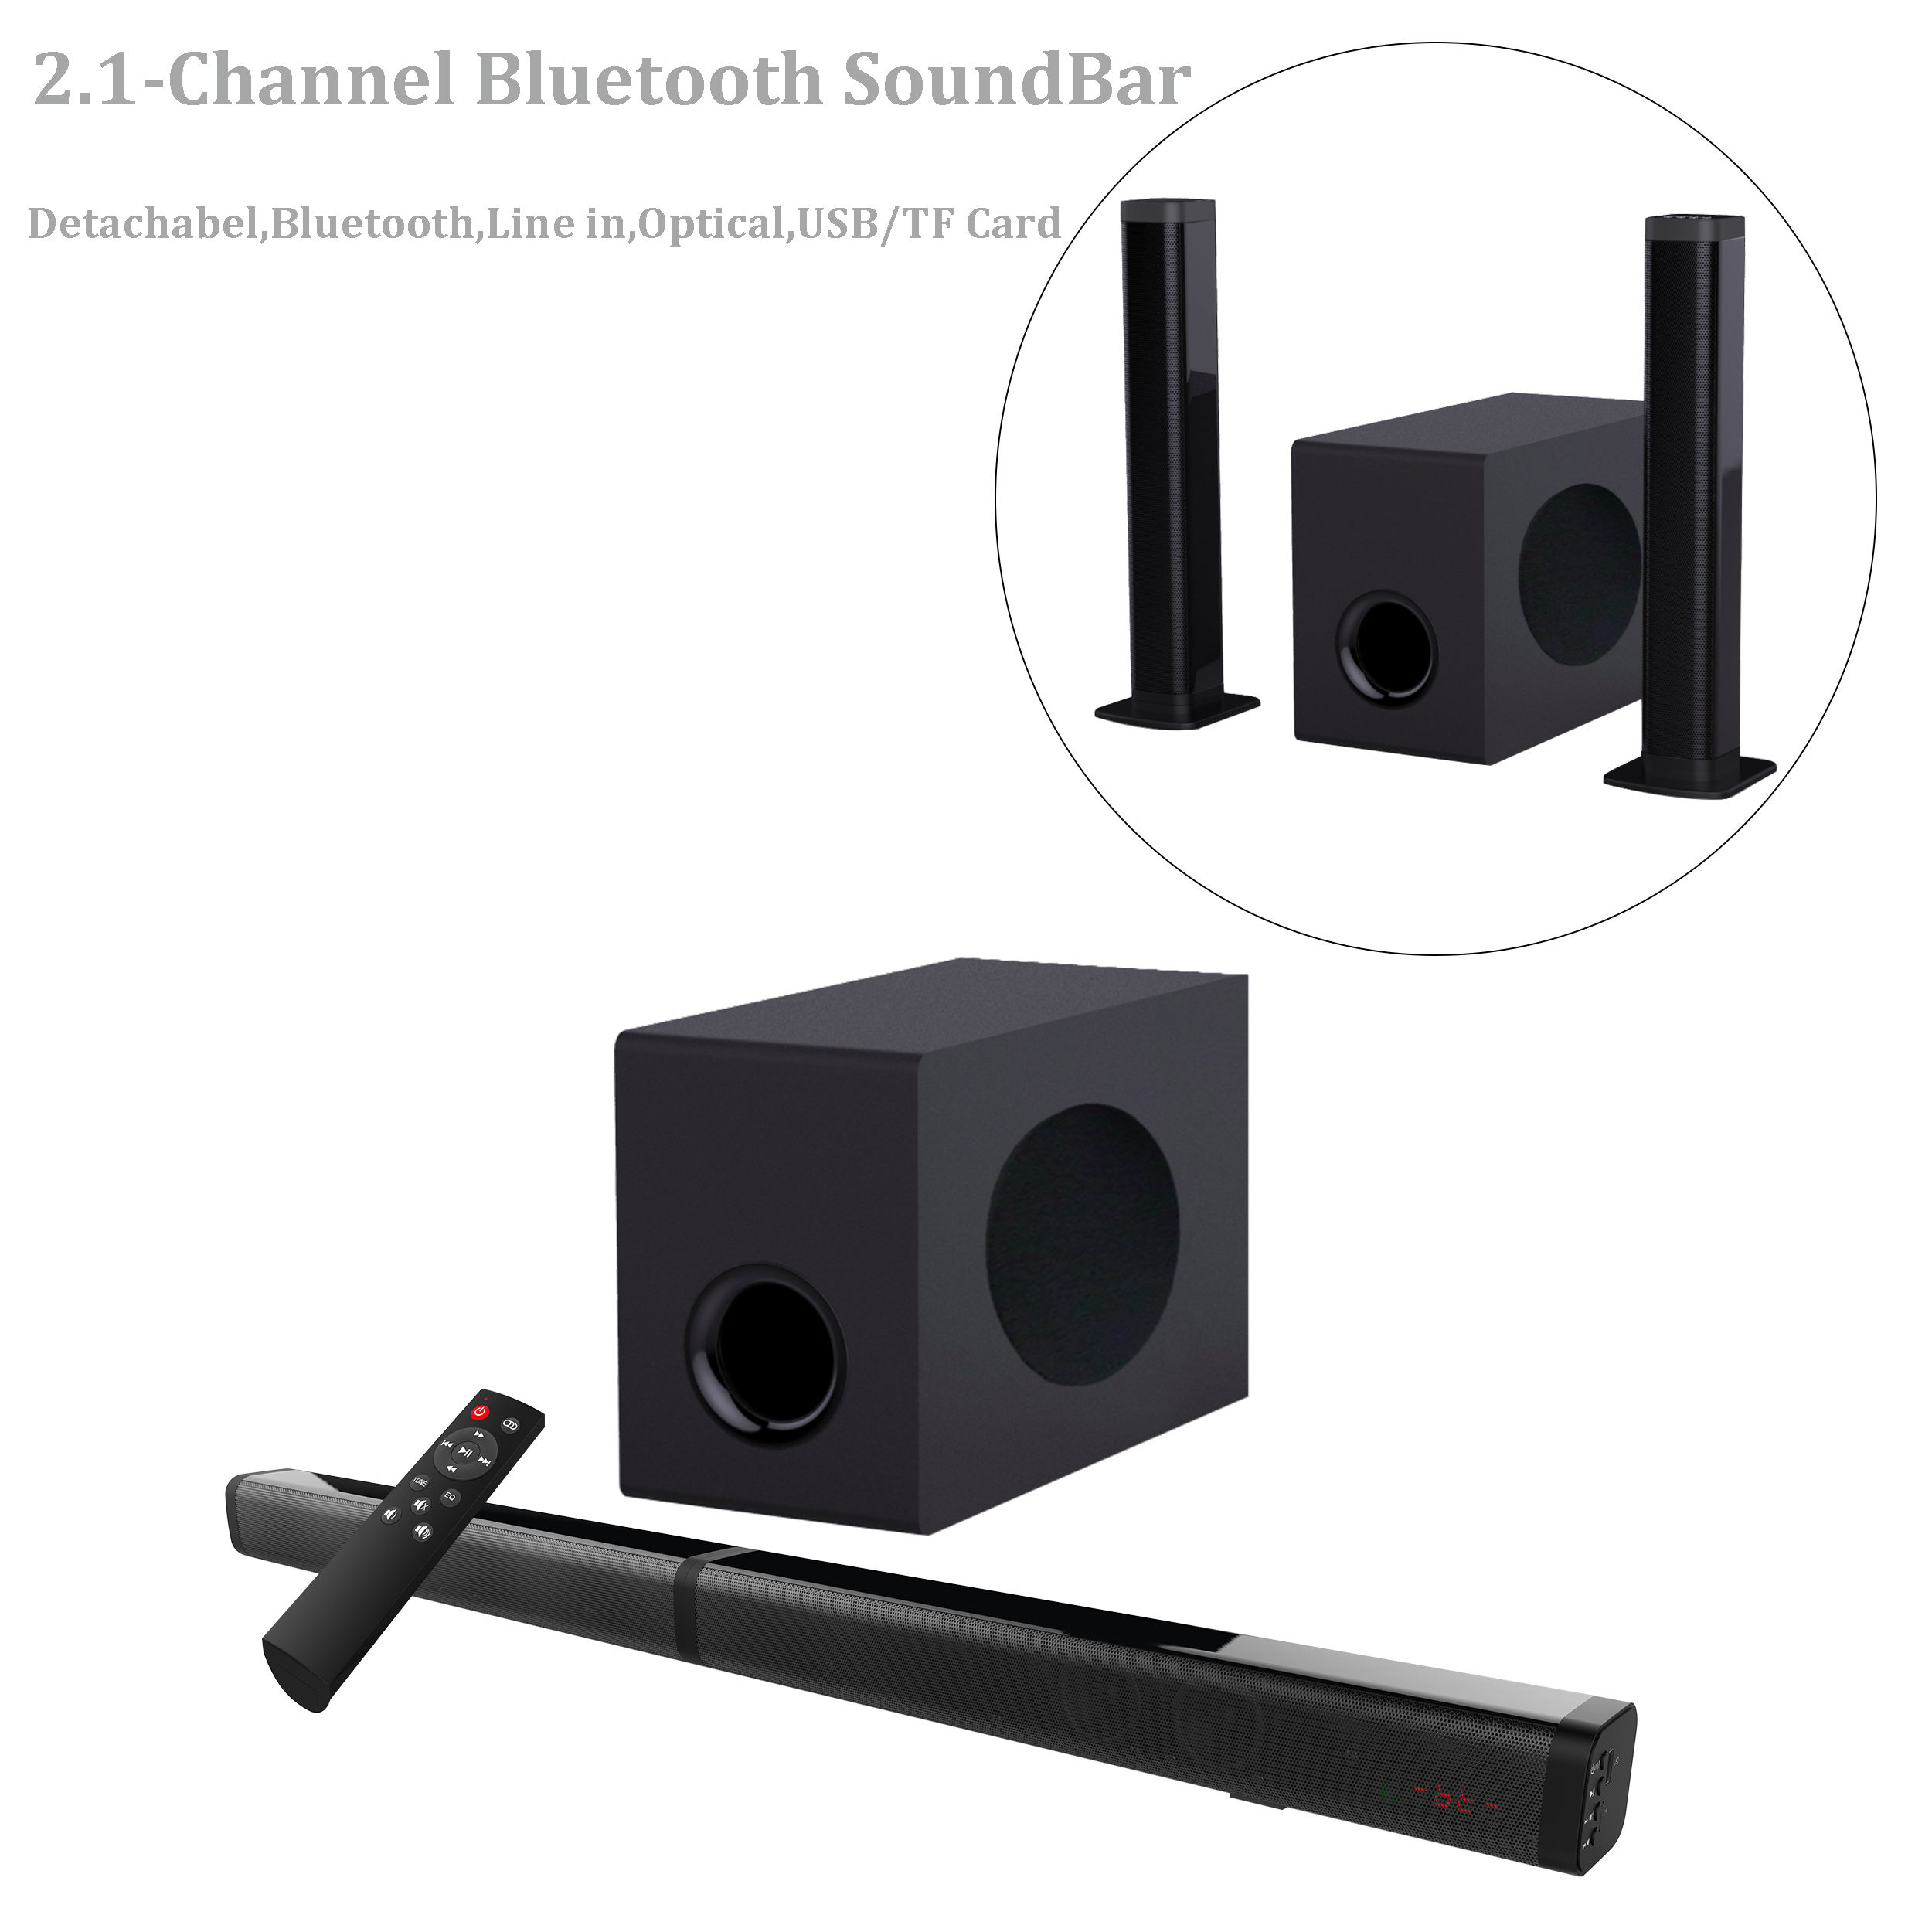 2020 amazon hot sale 2.1ch soundbar with subwoofer wireless tv sound bar with woofer